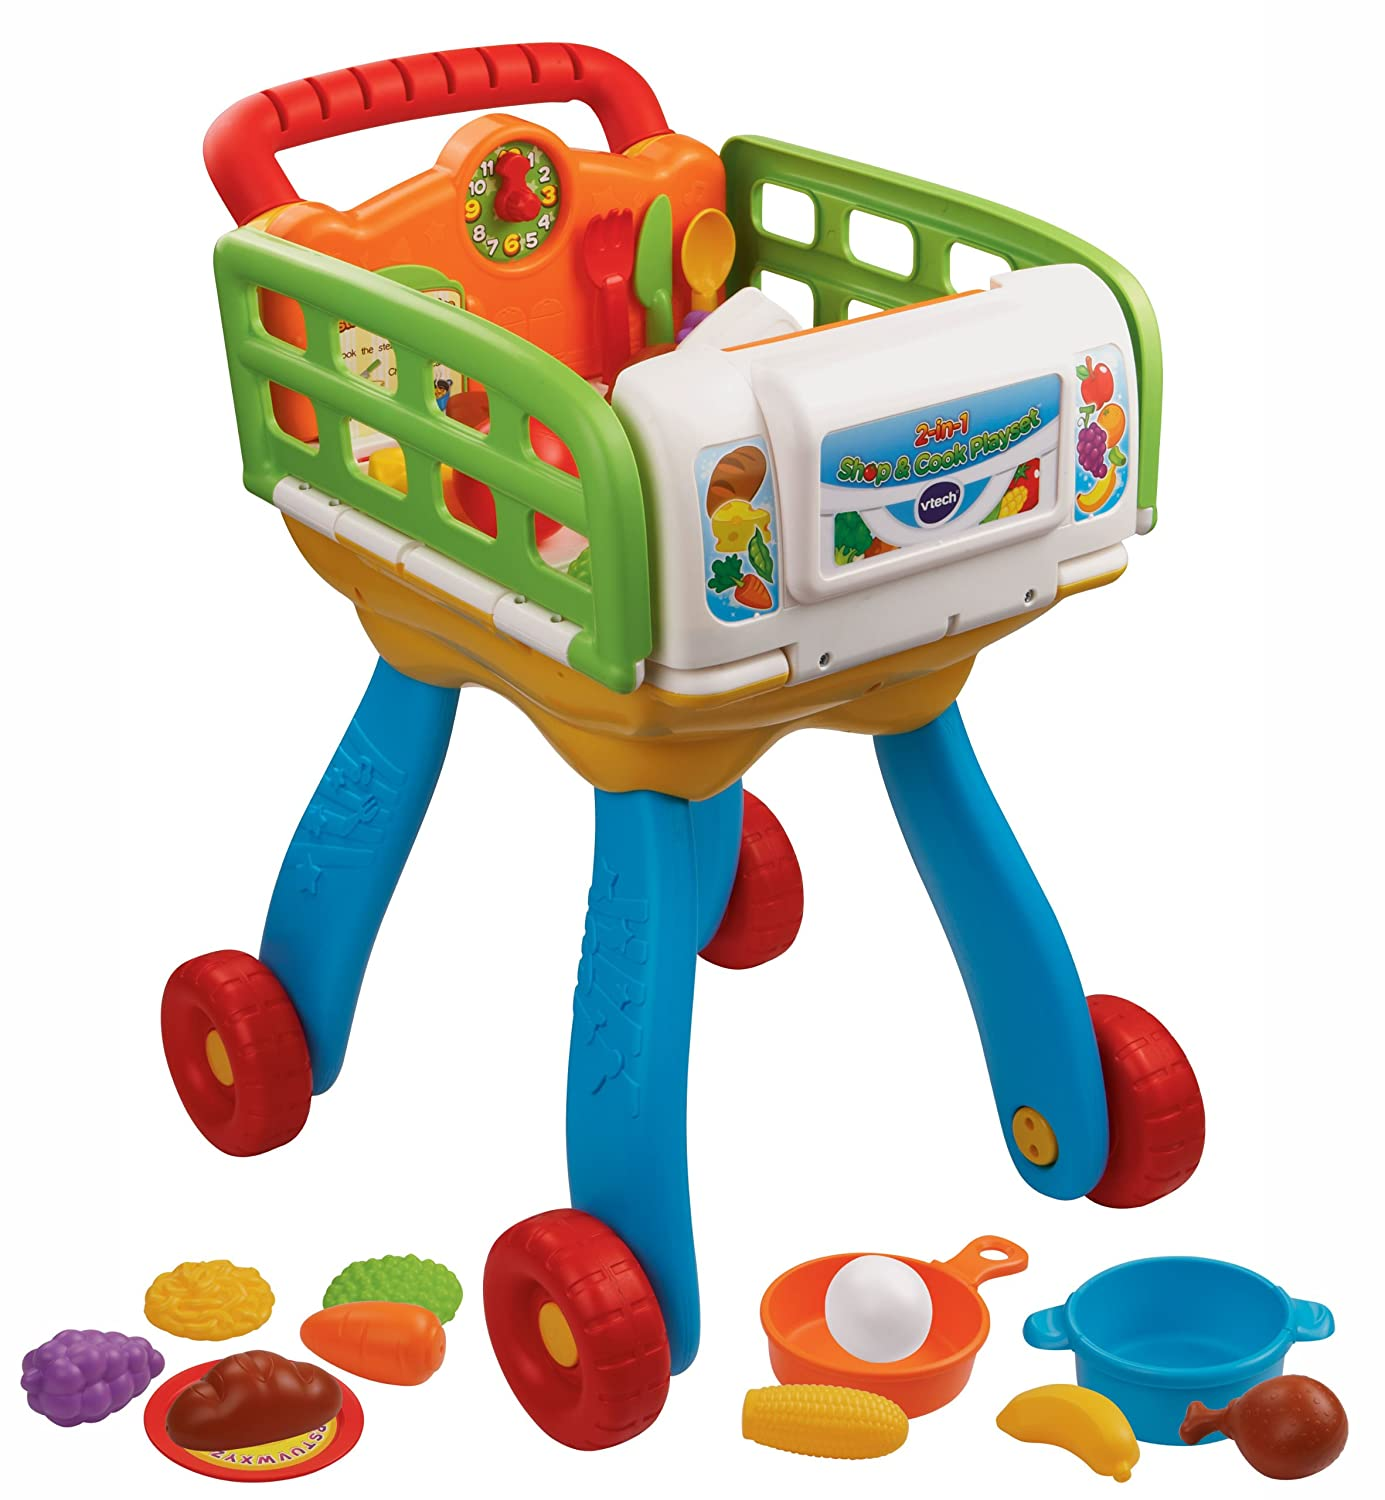 Amazon VTech 2 in 1 Shop and Cook Playset Toys & Games